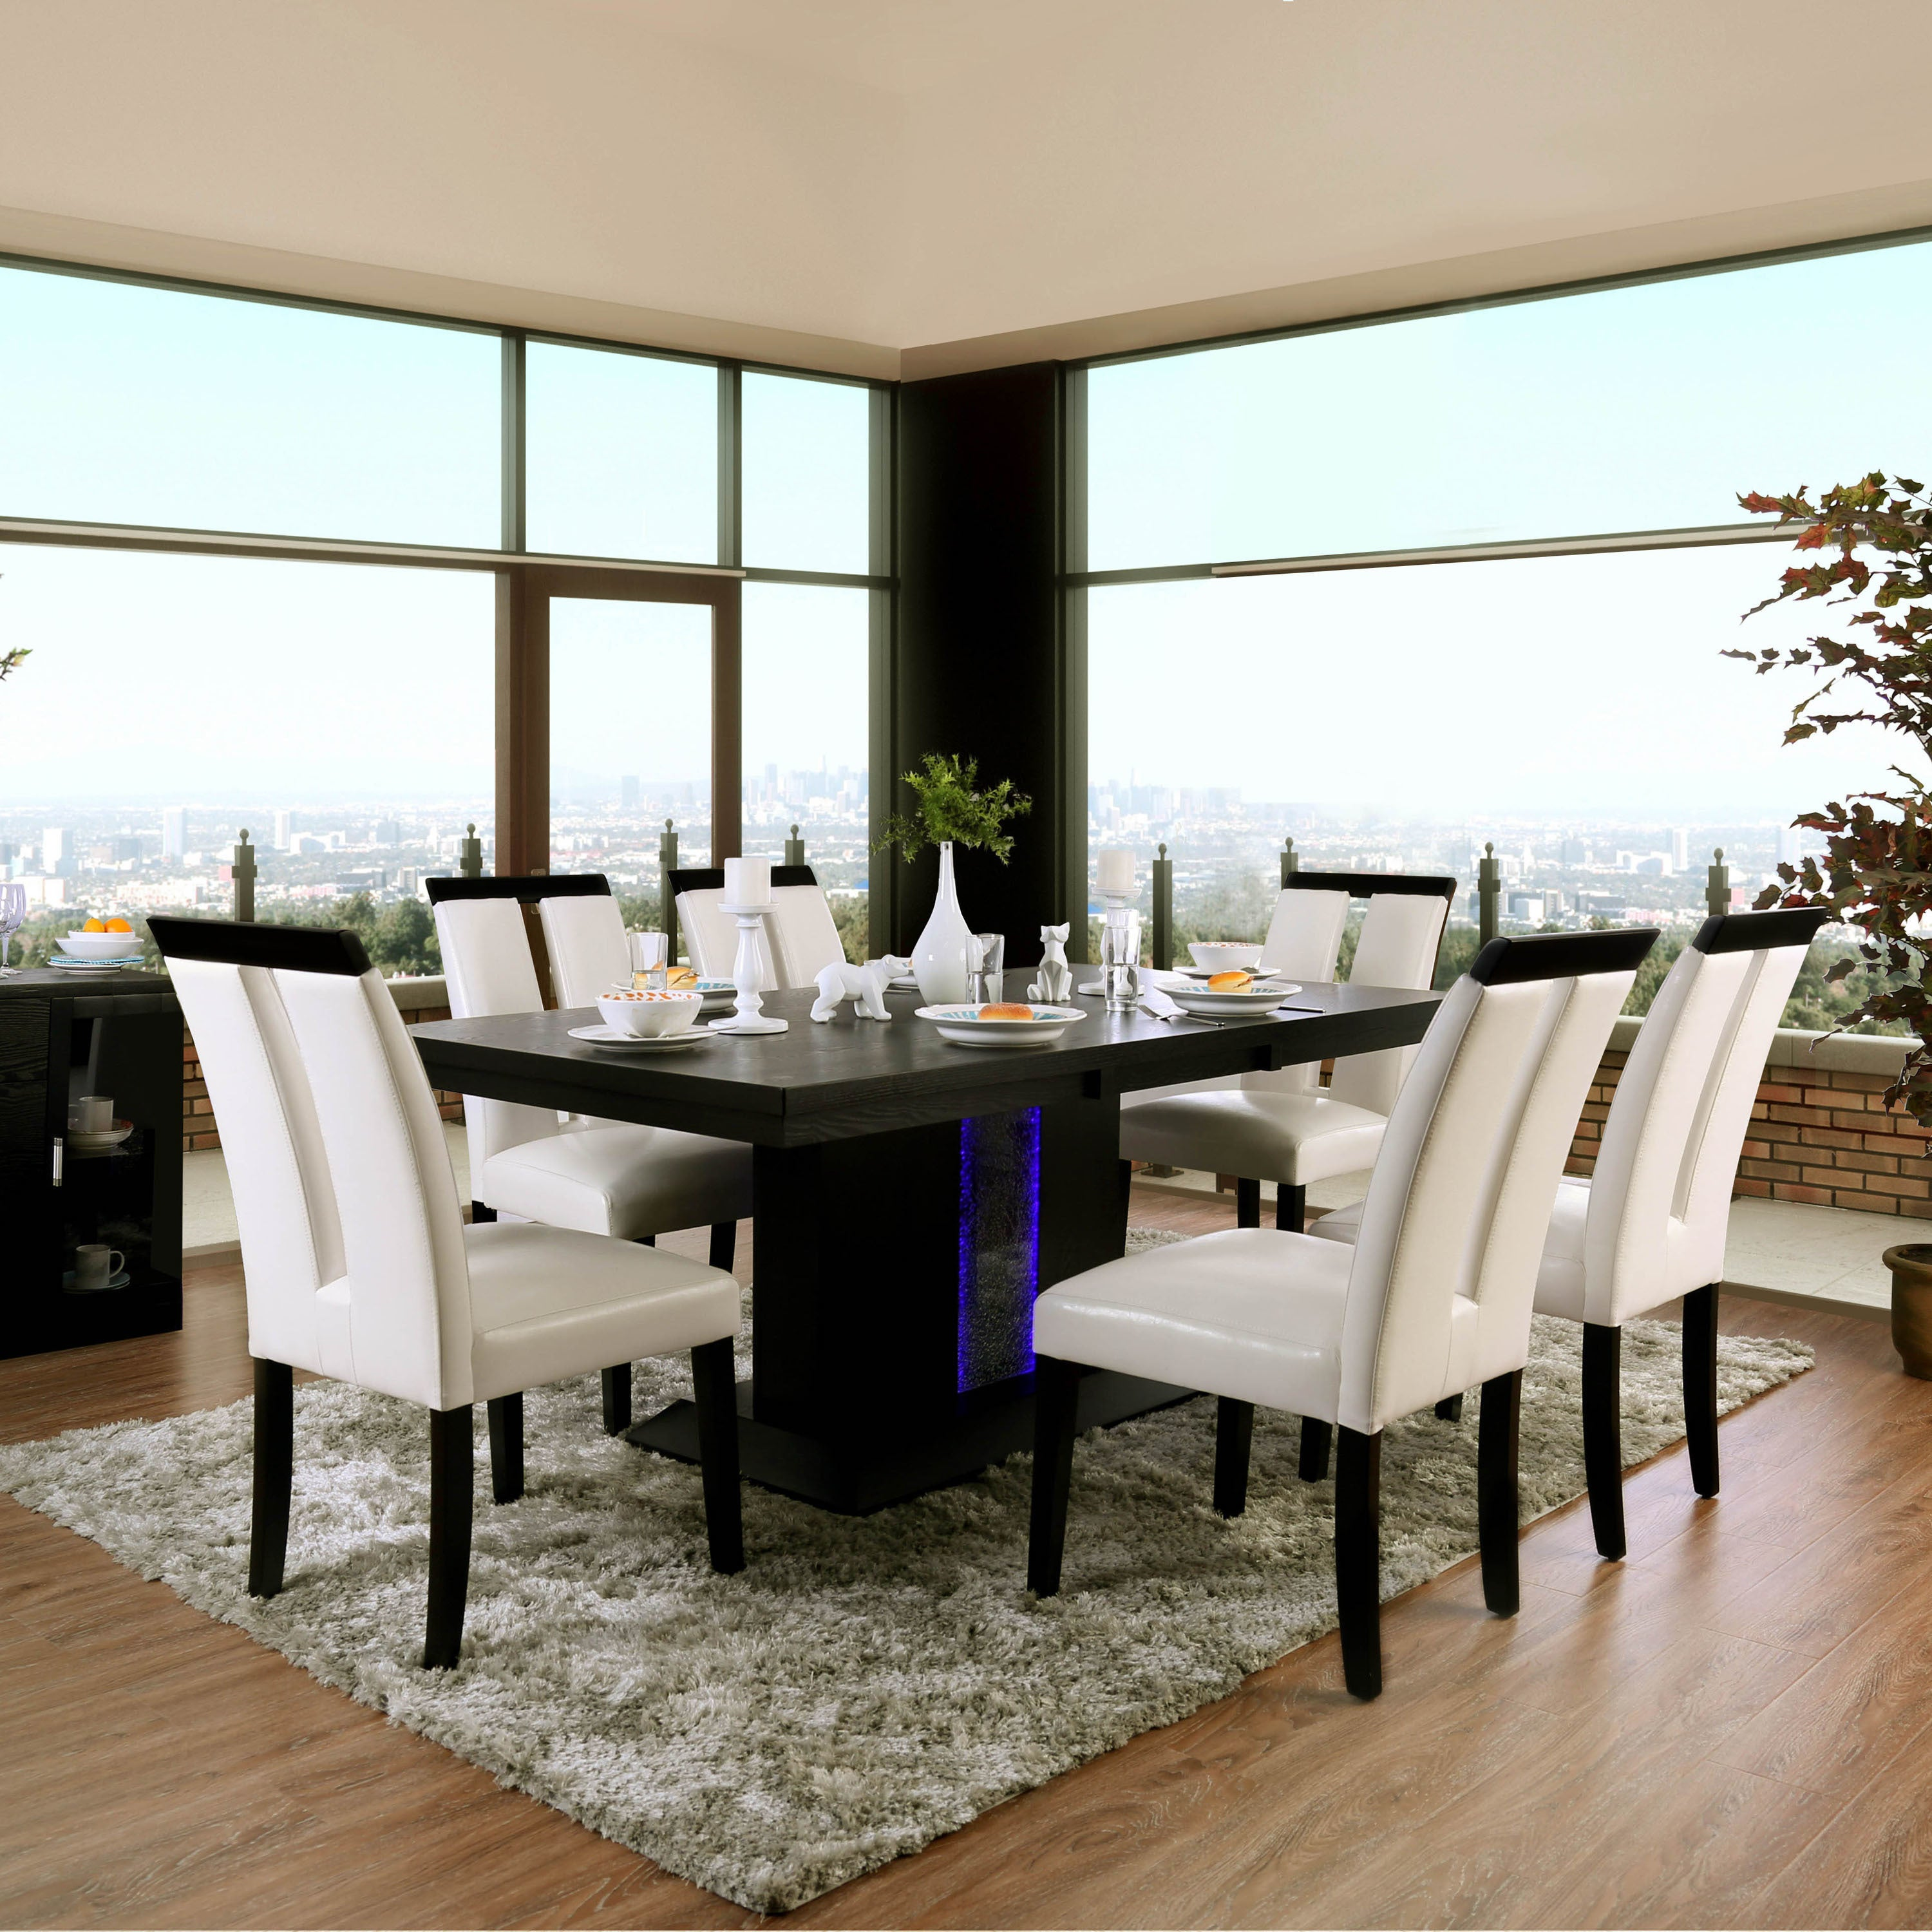 Furniture of America Tol Modern Black 76-inch Solid Wood Dining Table